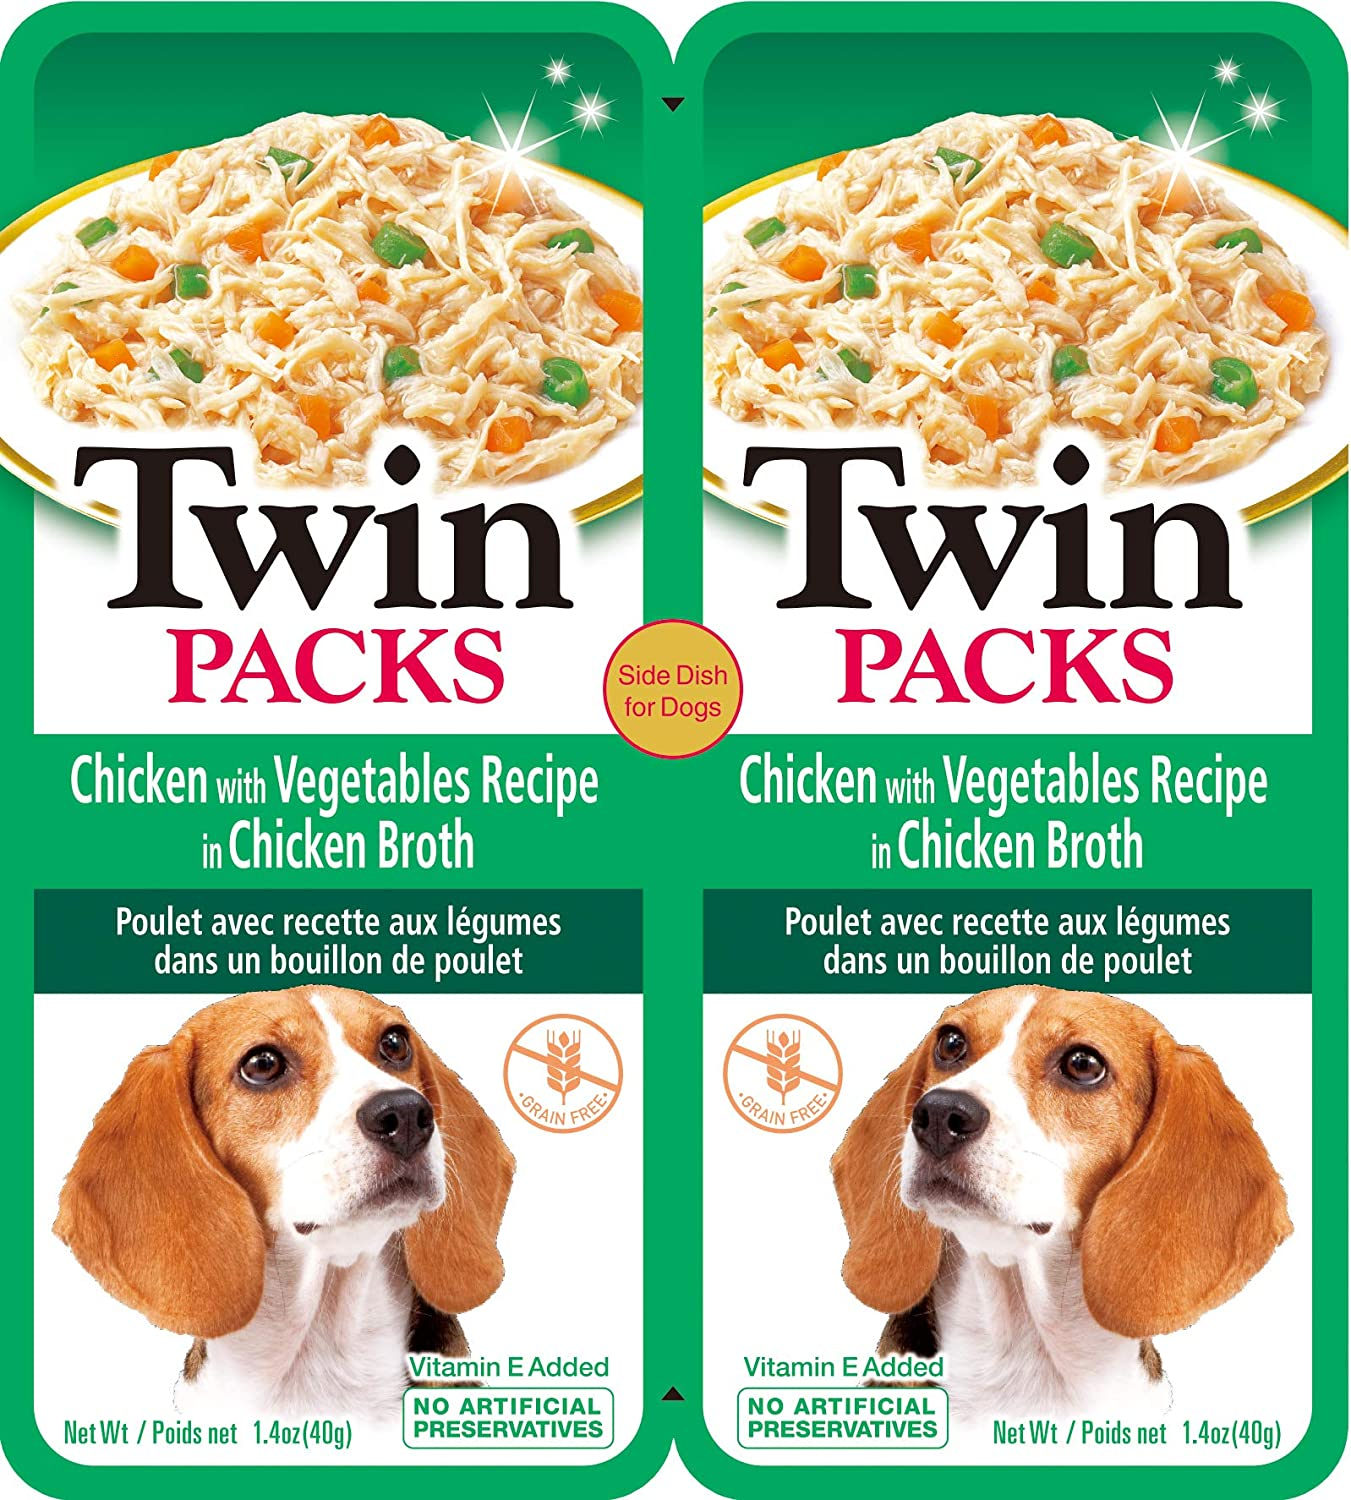 INABA Twin Packs Side Dish for Dogs - Chicken with Vegetables Recipe in Chicken Broth (8 -2 Packs), Blue, IND801